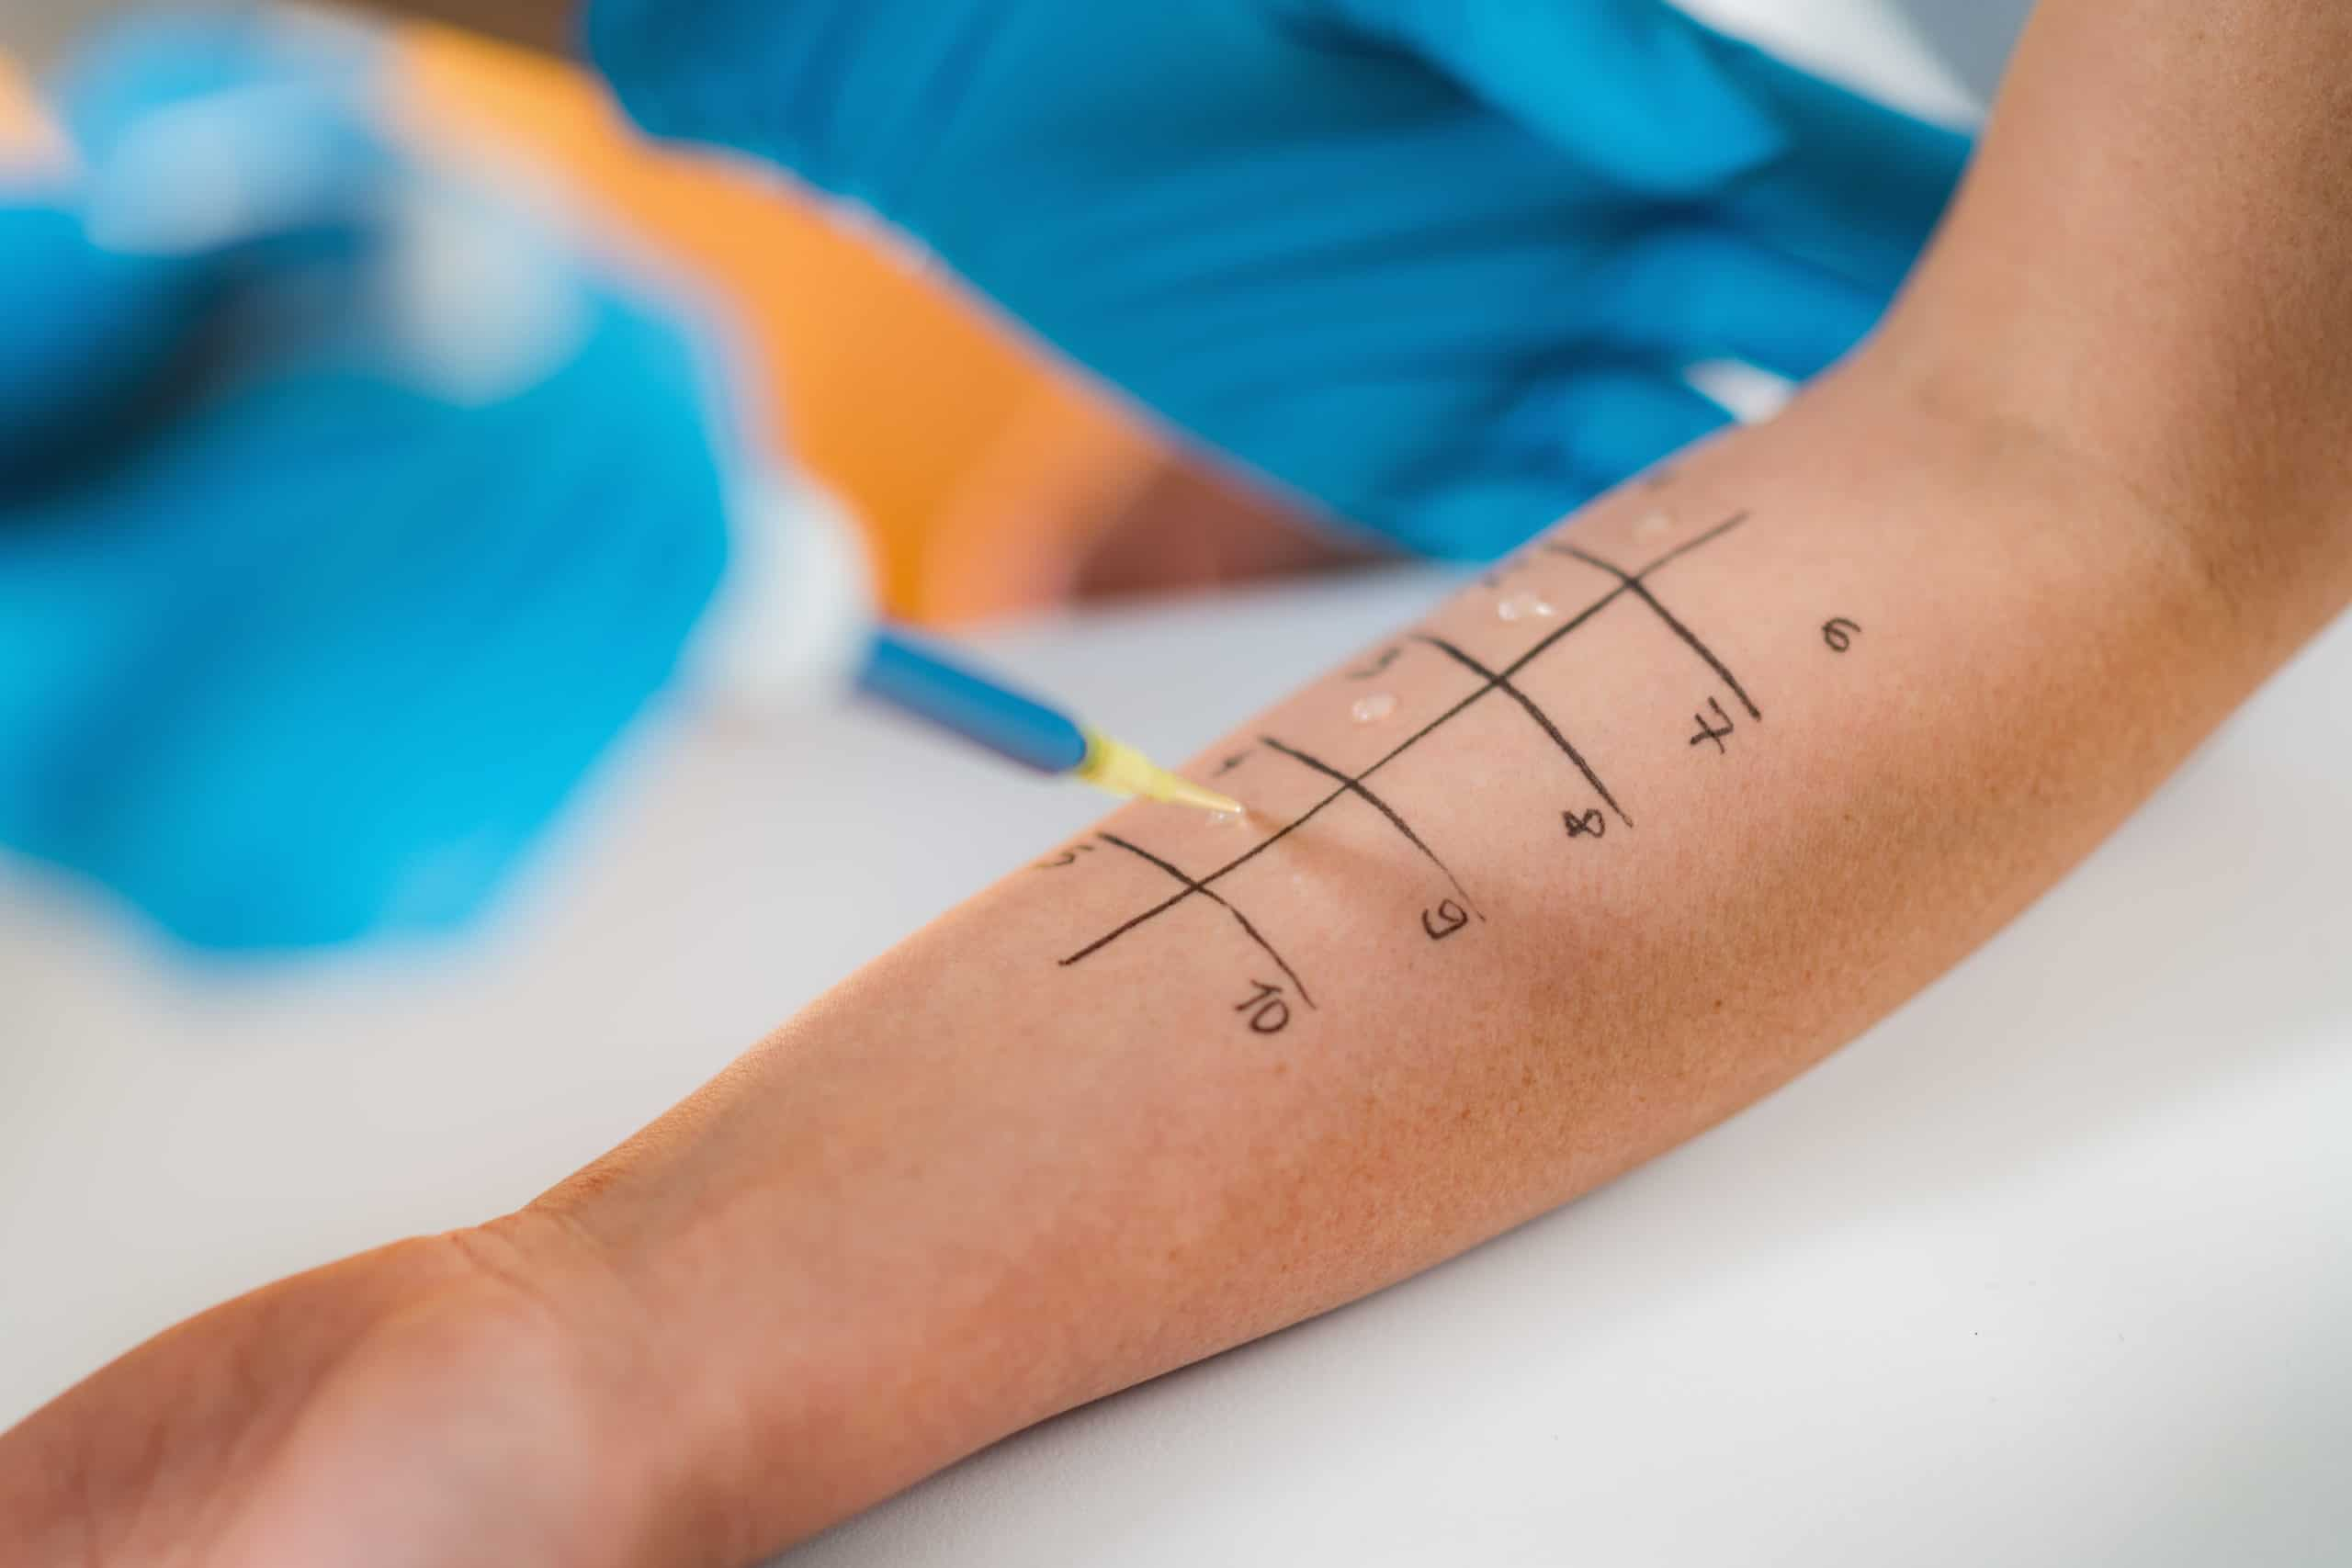 Allergy Test- Skin Prick Allergy Testing for Possible Allergens